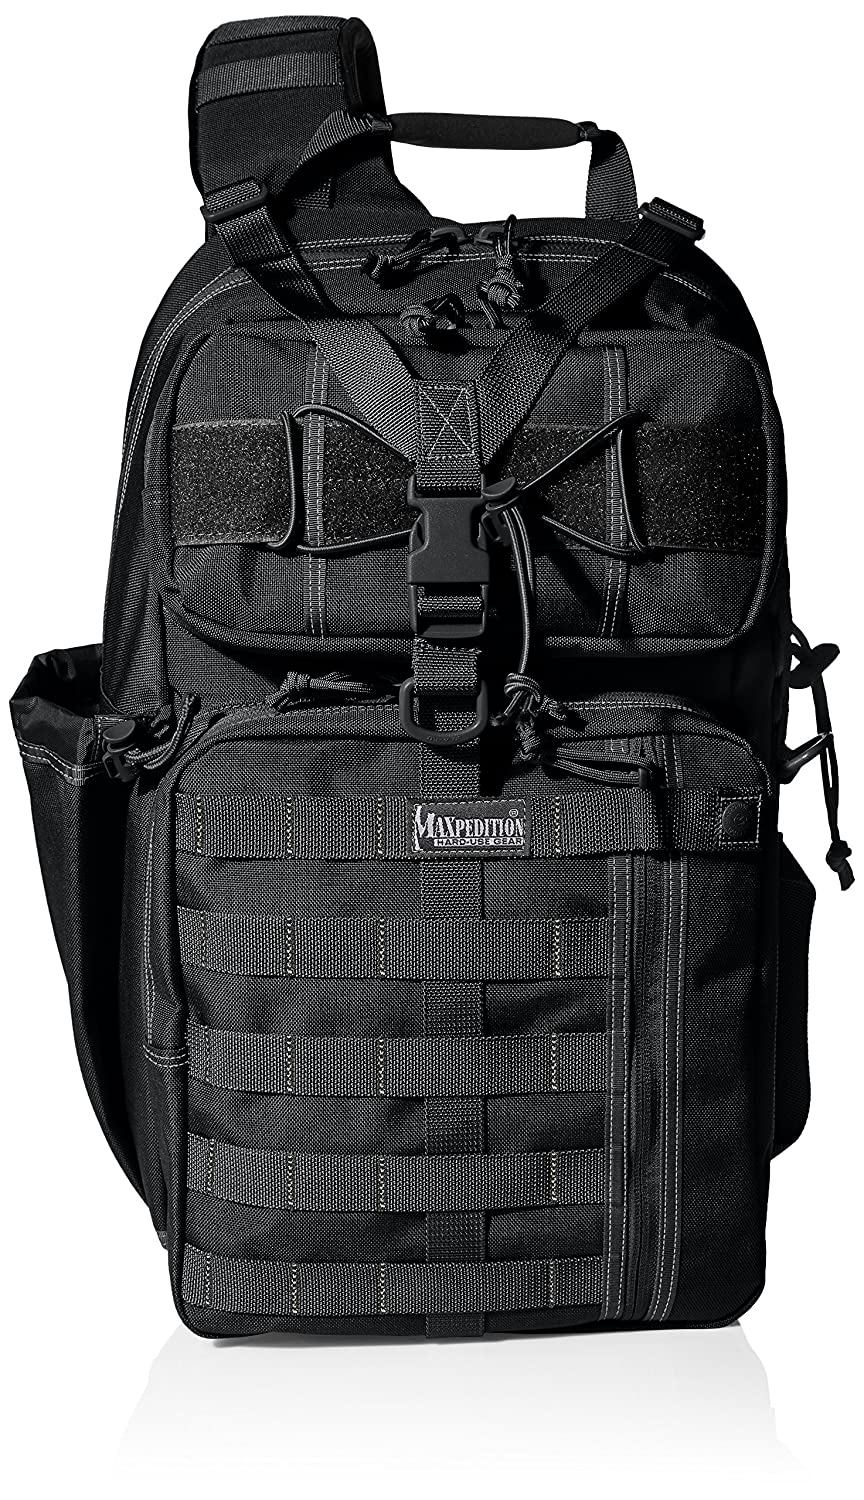 Maxpedition Kodiak Gearslinger Backpack